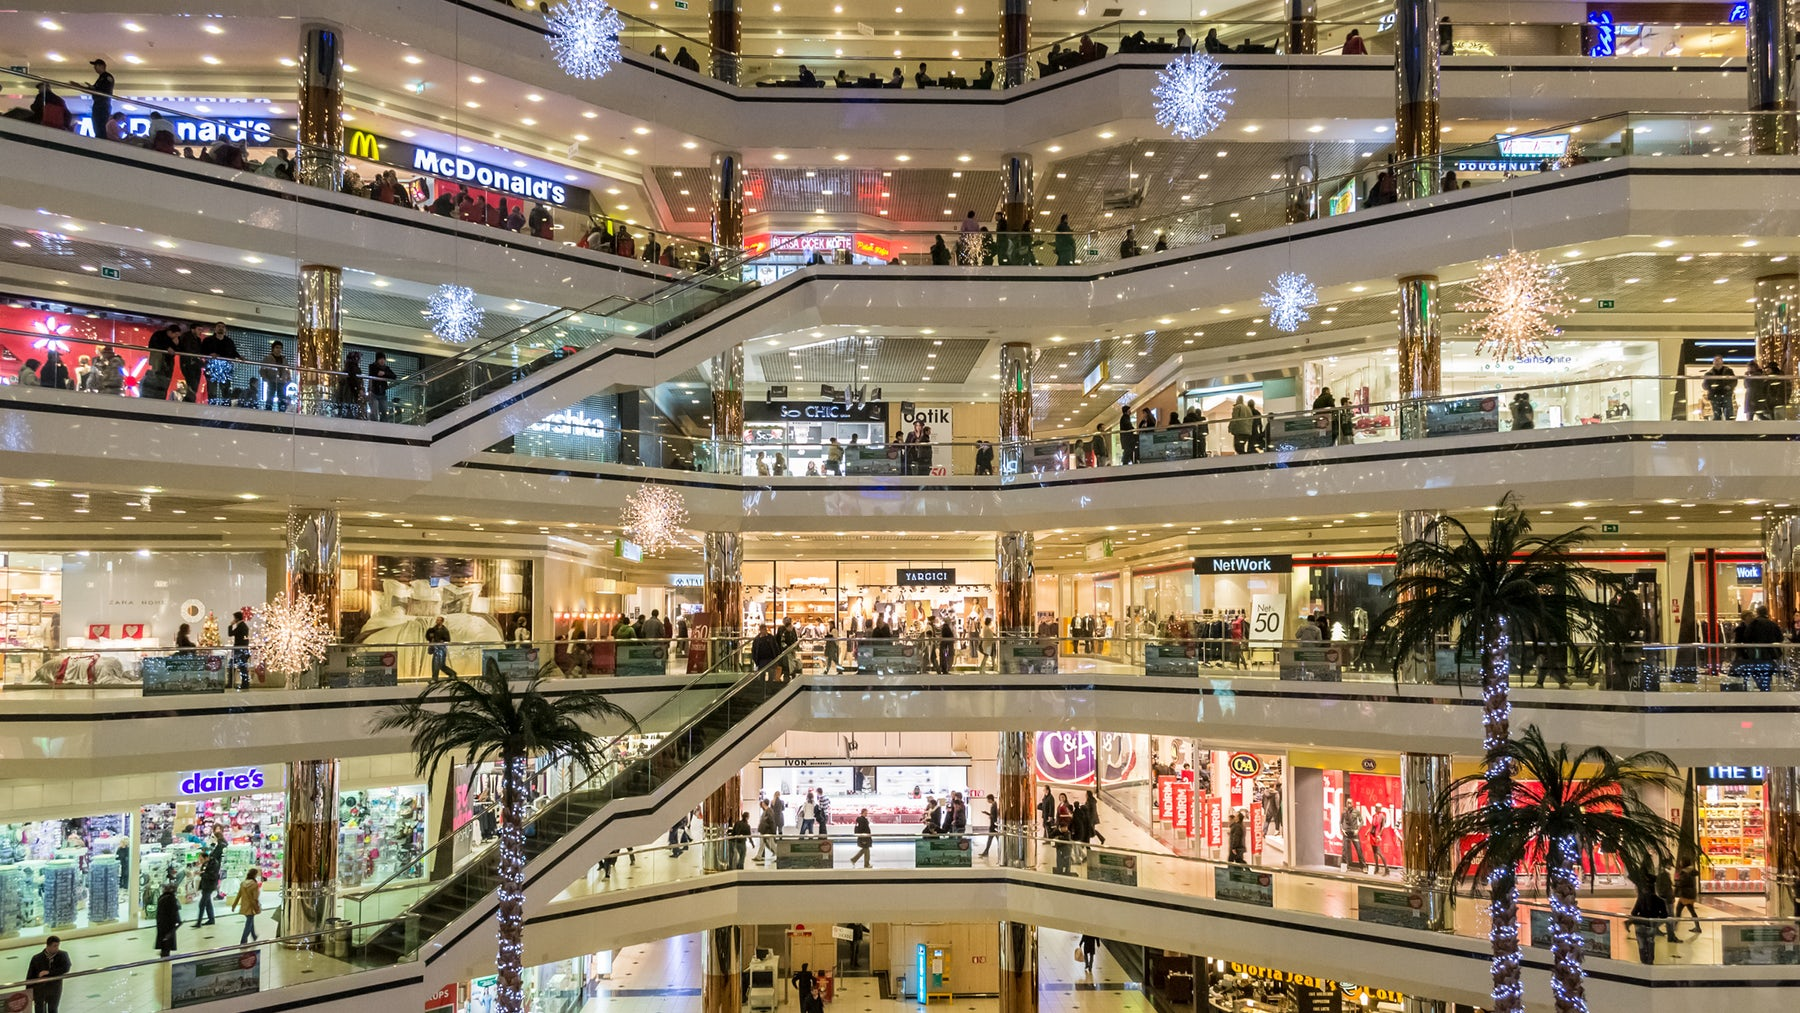 A shopping mall with fast fashion stores | Source: Shutterstock